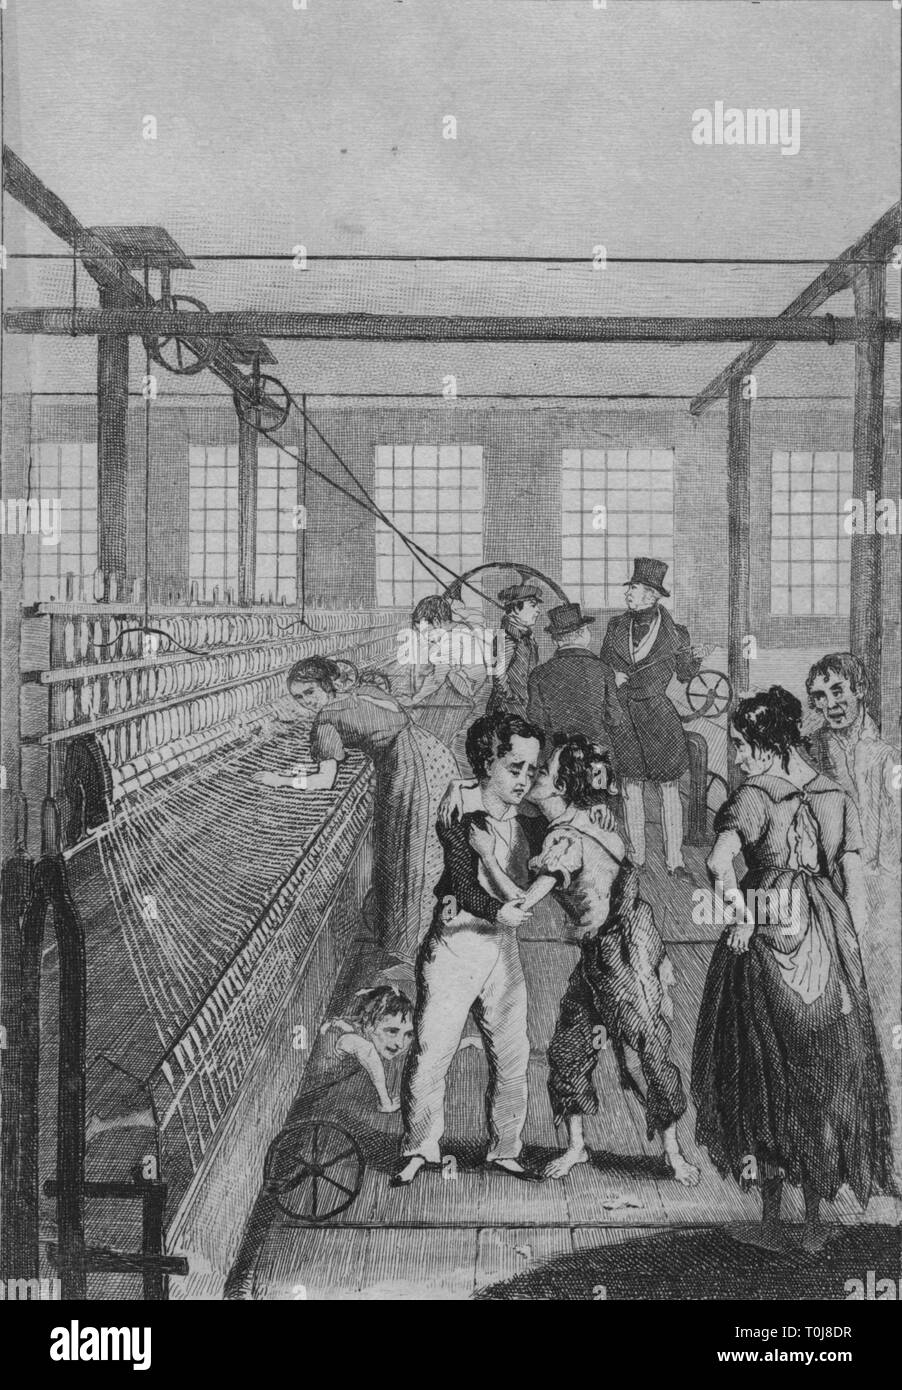 "'Love Conquered Fear', c1840. Ragged child workers in a Victorian textile factory. British writer Frances Trollope visited Manchester in 1832 to witness the condition of children employed in the textile mills there. Children were often forced to work twelve hours a day in very dangerous conditions for little pay. The factory owners exploited their size and nimbleness, making them climb under the looms to remove dust and threads while the machines were still moving, often resulting in injury or death. From ""The life and adventures of Michael Armstrong, the factory boy"" by Frances Trol - Stock Image"